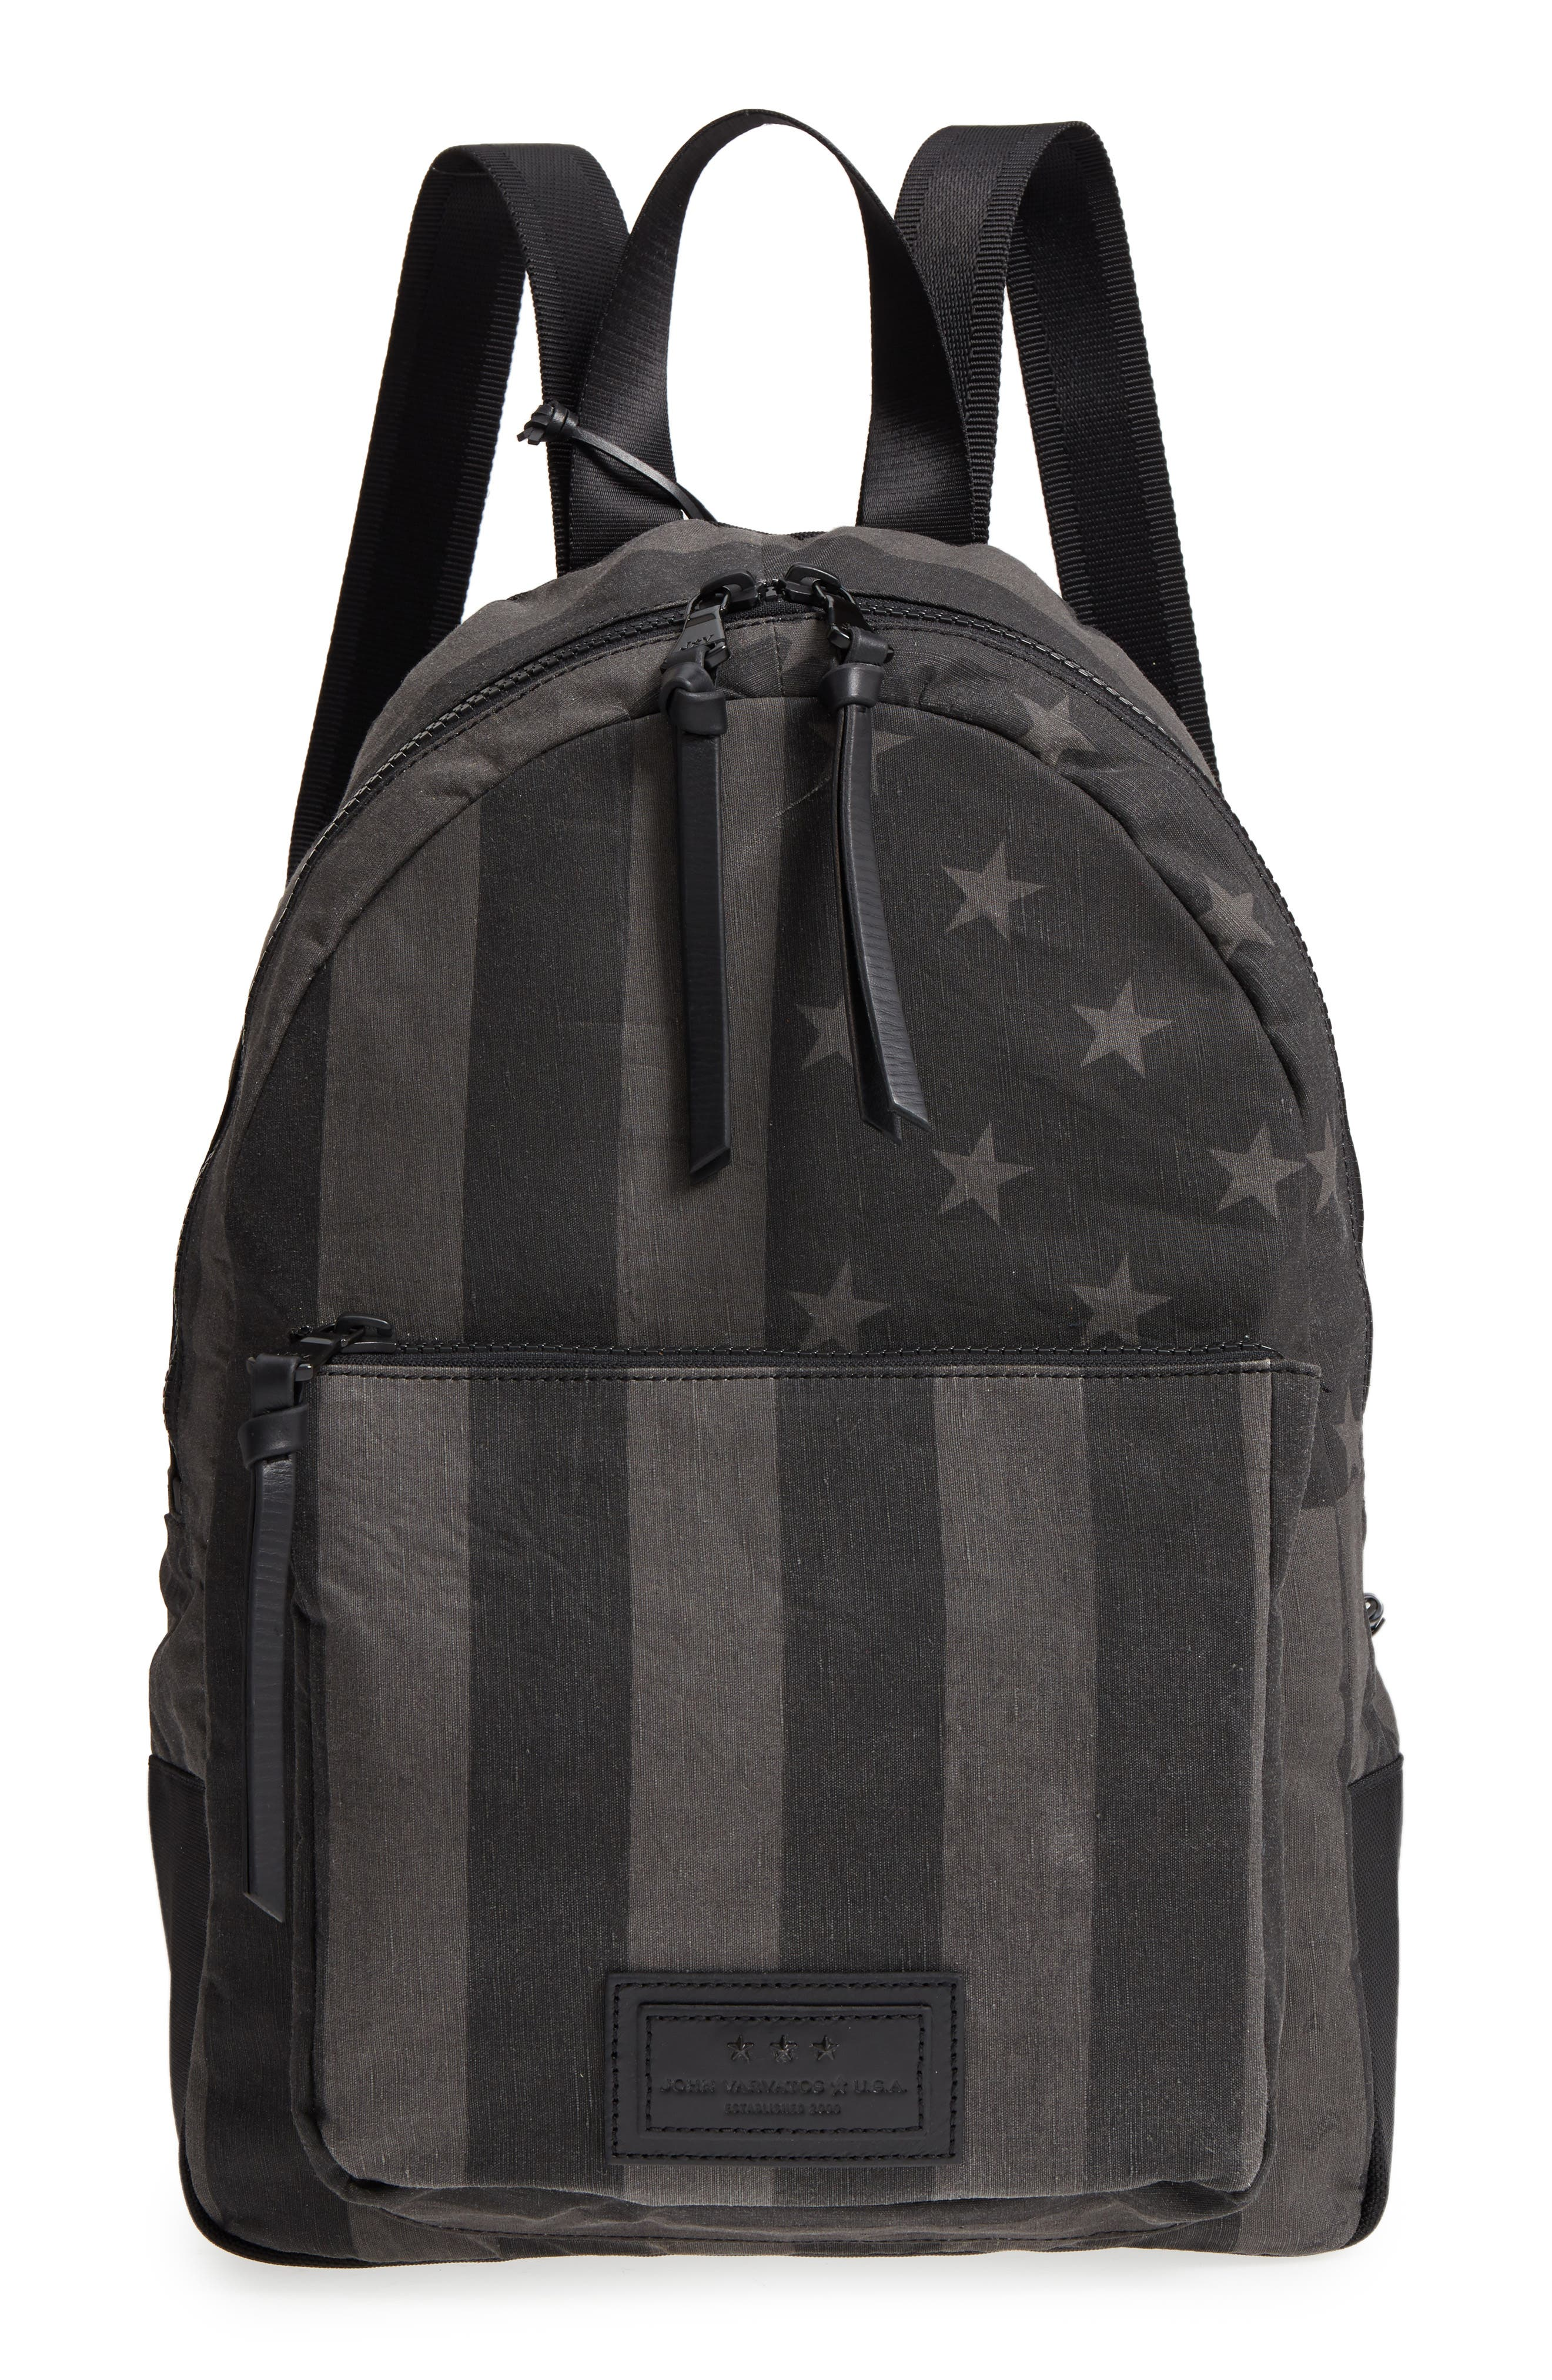 Gibson Flag Print Backpack,                             Main thumbnail 1, color,                             Charcoal